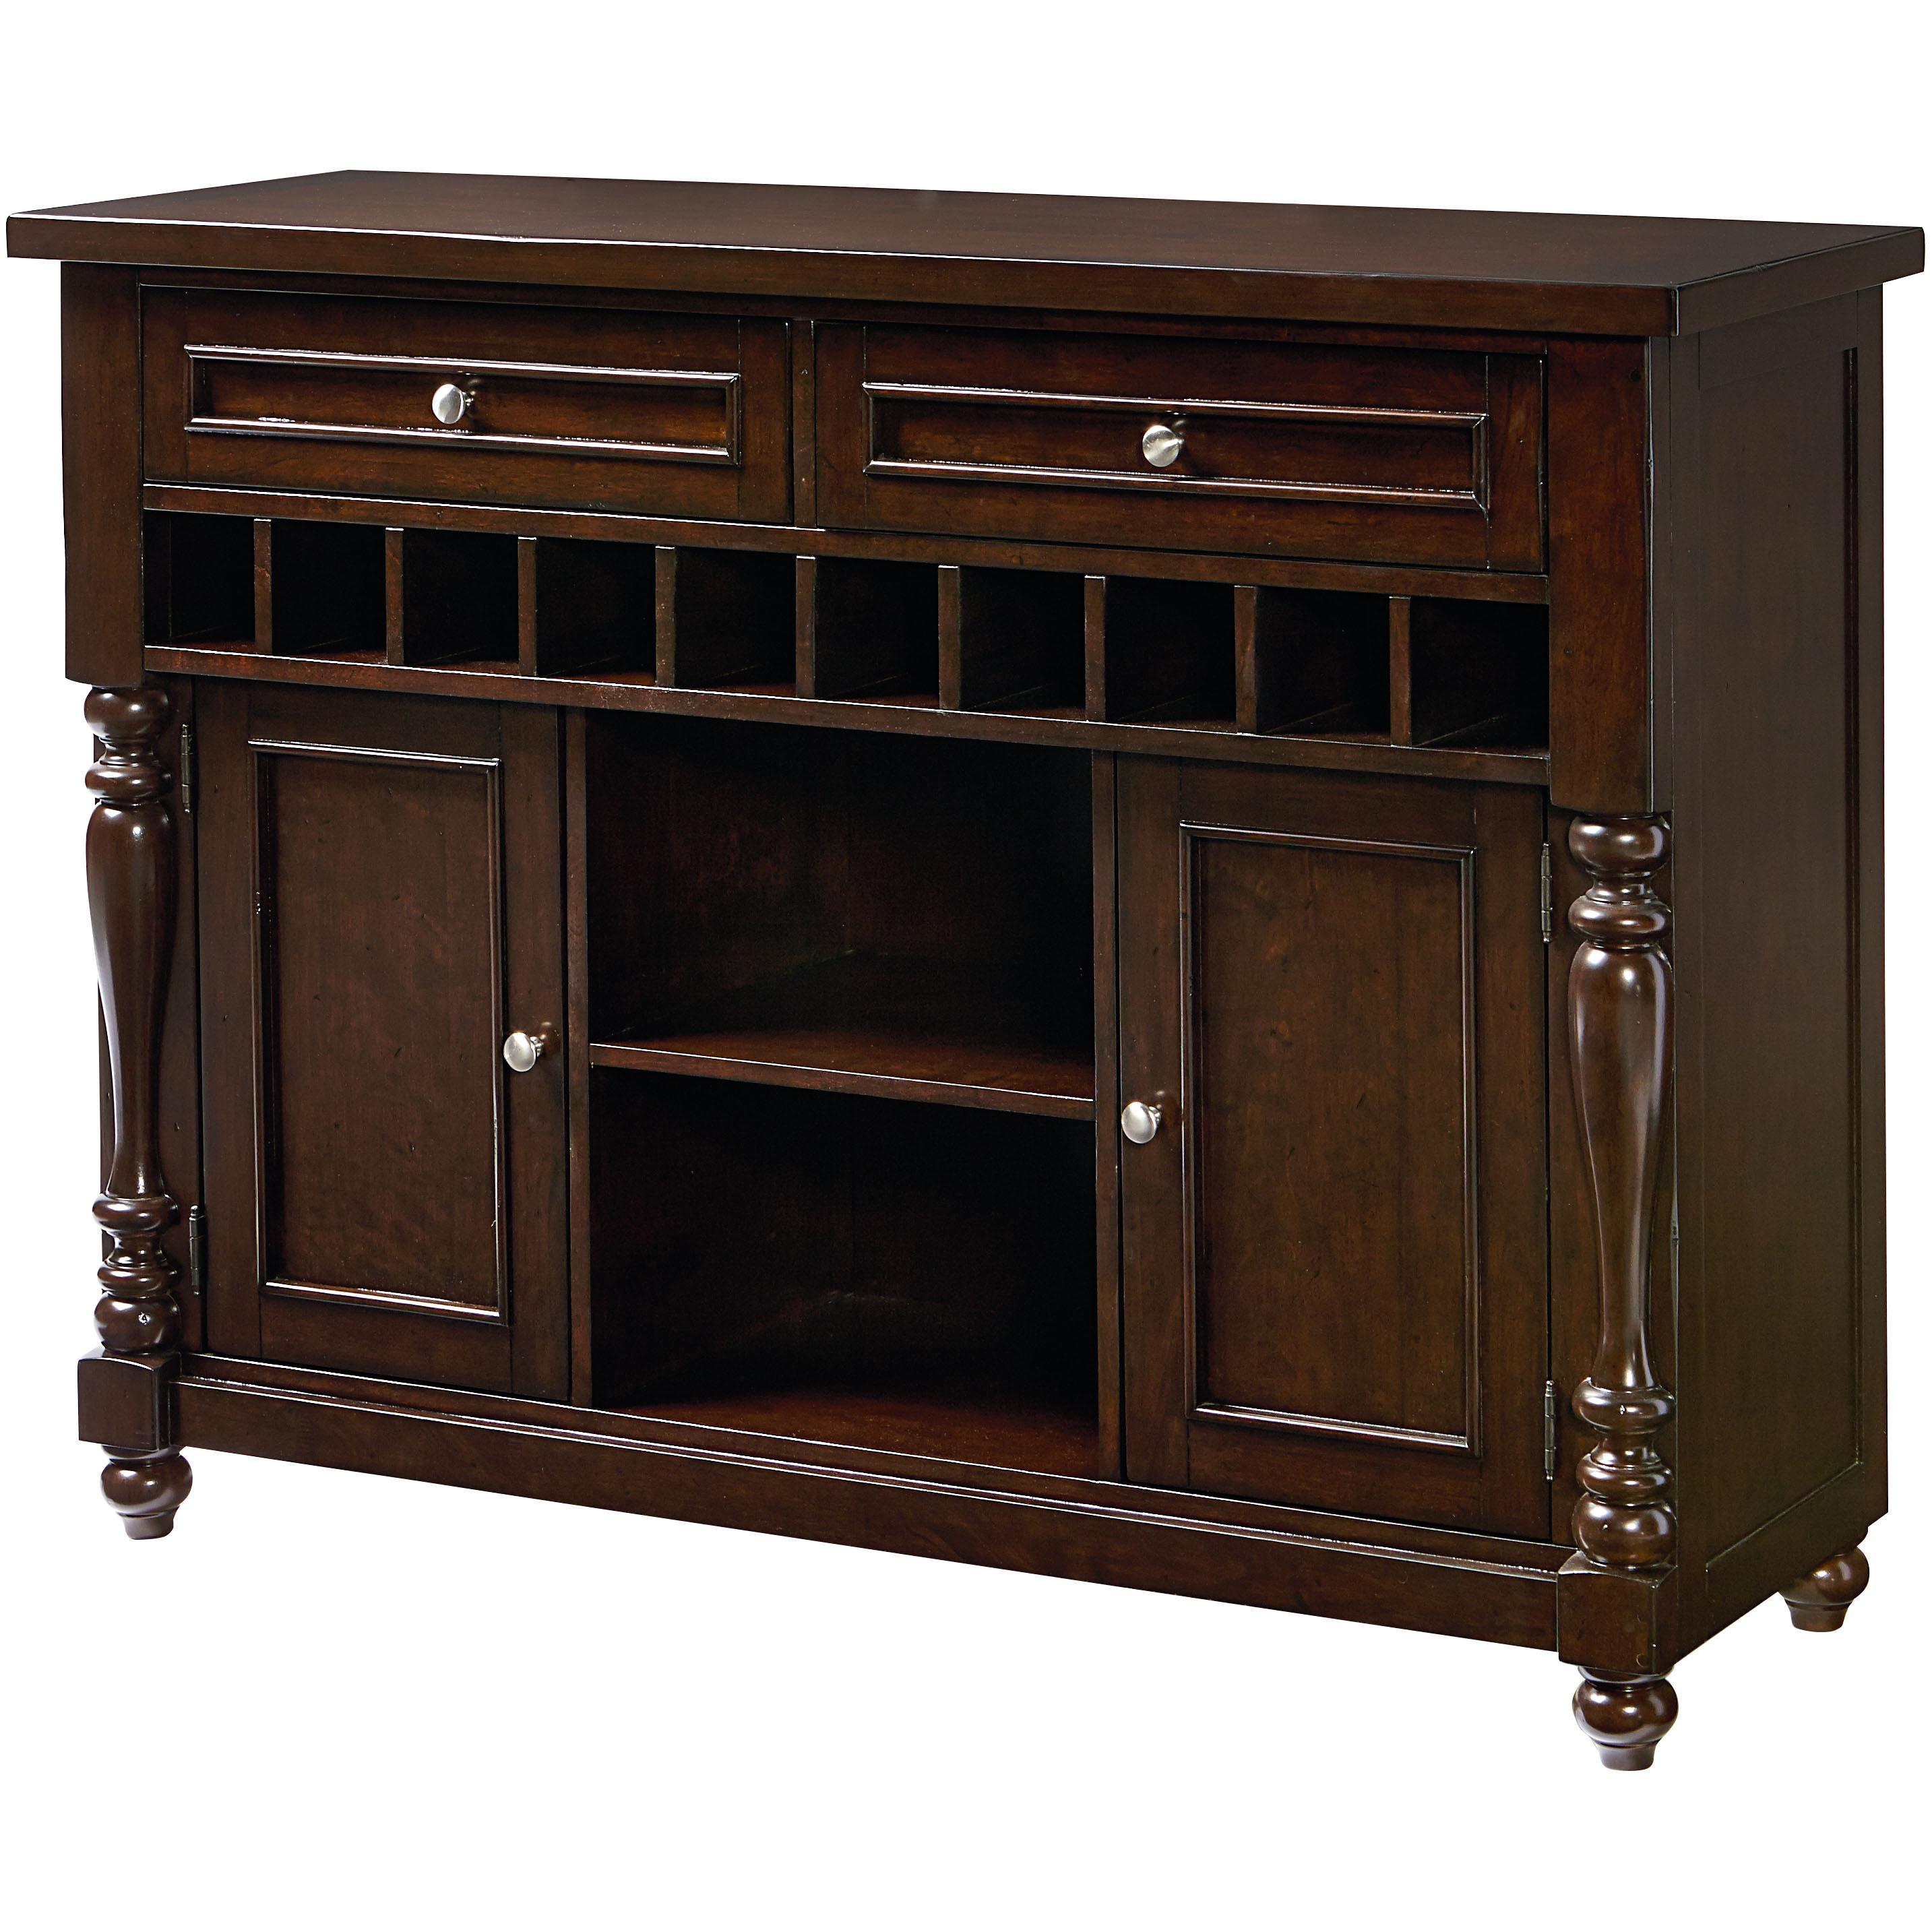 McGregor Buffet With 10 Bottle Wine Rack By Standard Furniture At Dunk Bright